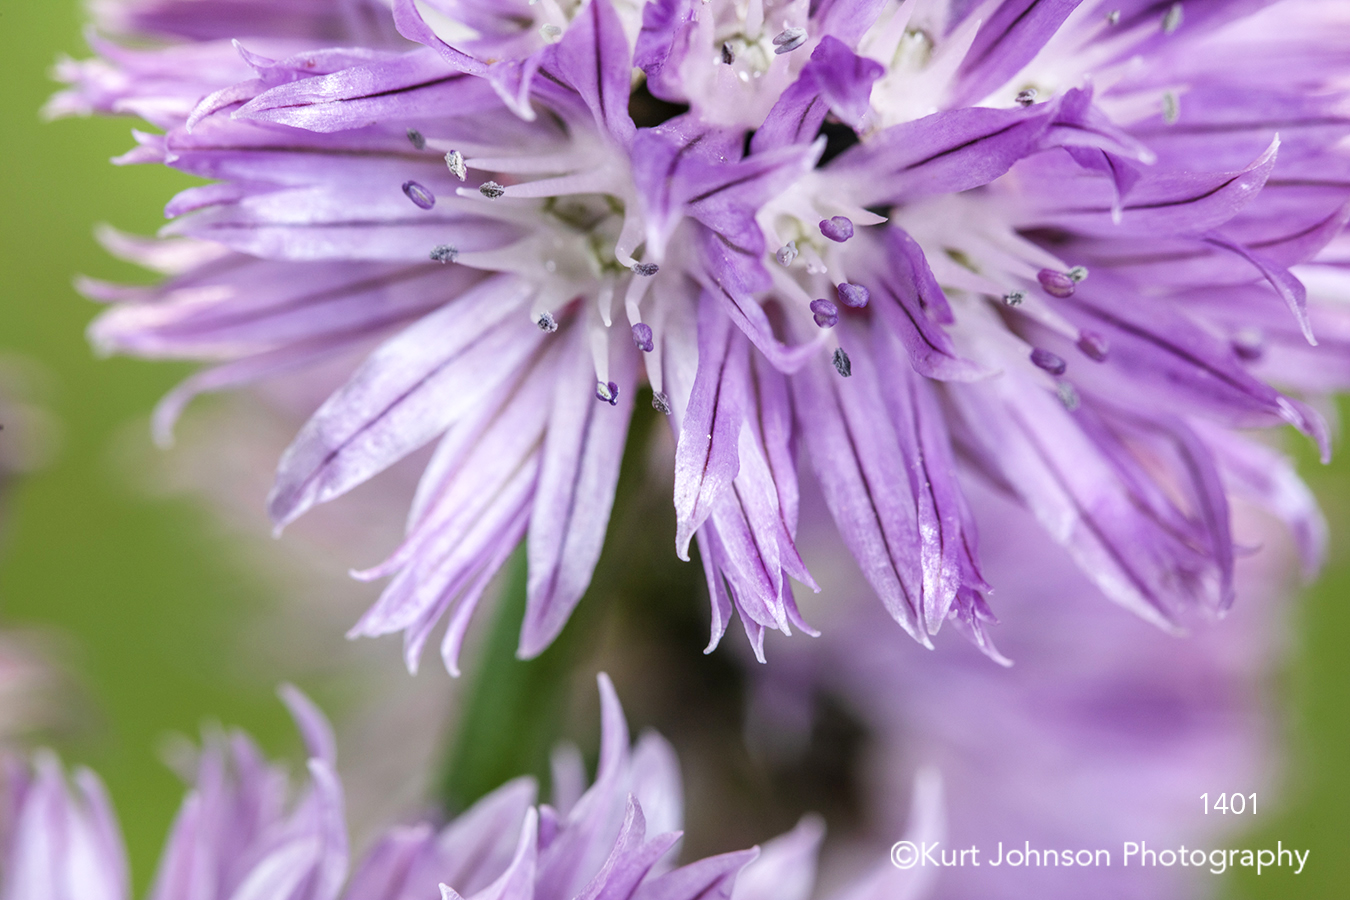 purple chive chives herb flower close up details macro flowers